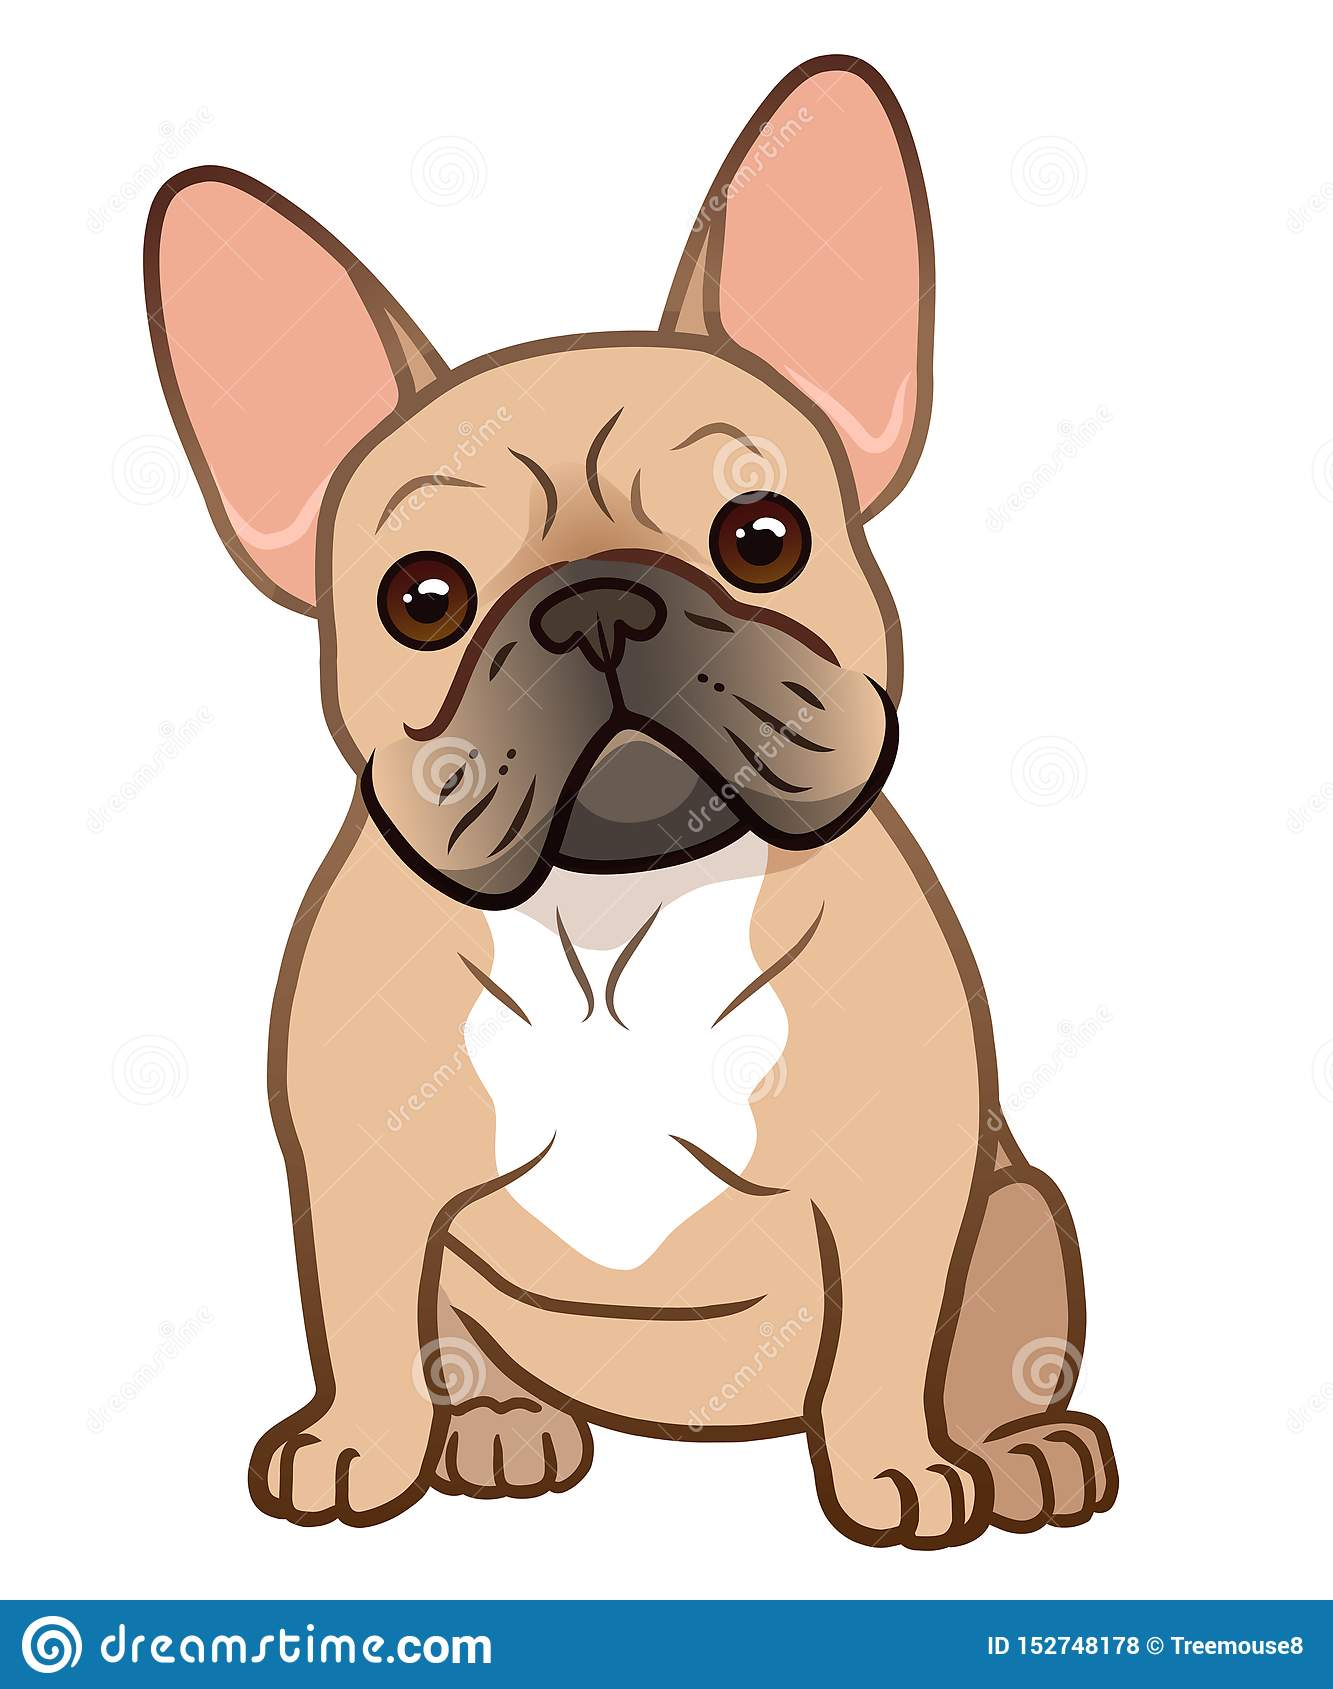 French Bulldog Cute Sitting Puppy With Funny Head Tilt Vector Cartoon Illustration Isolated On White Dogs Pets Animal Lovers Stock Illustration Illustration Of Doggy Love 152748178